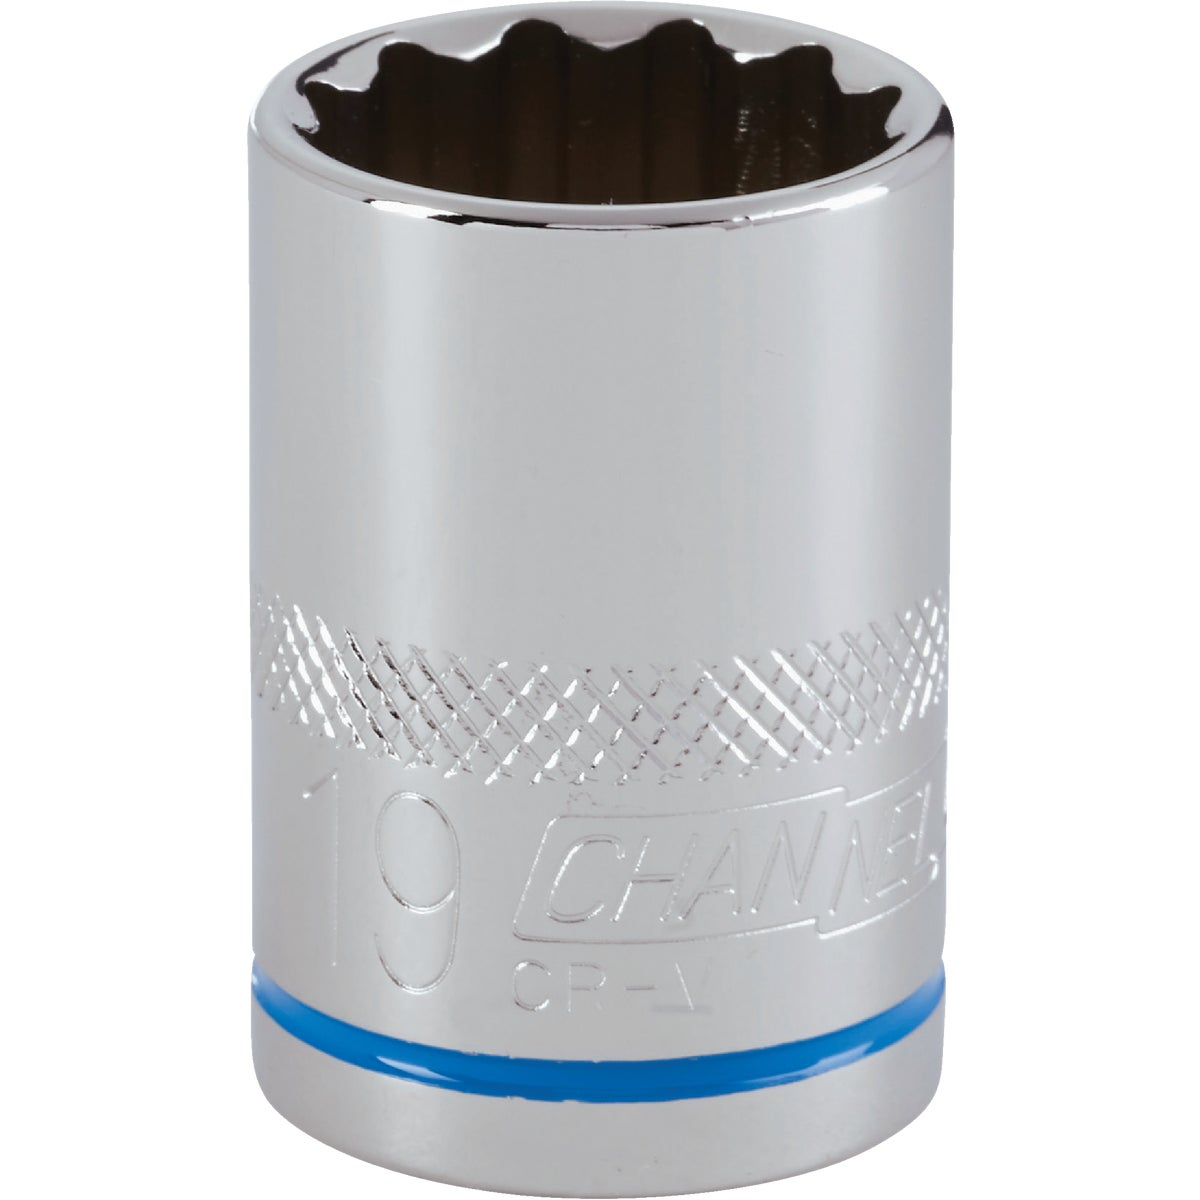 19MM 1/2 DRIVE SOCKET - 397695 by Danaher Tool Ltd